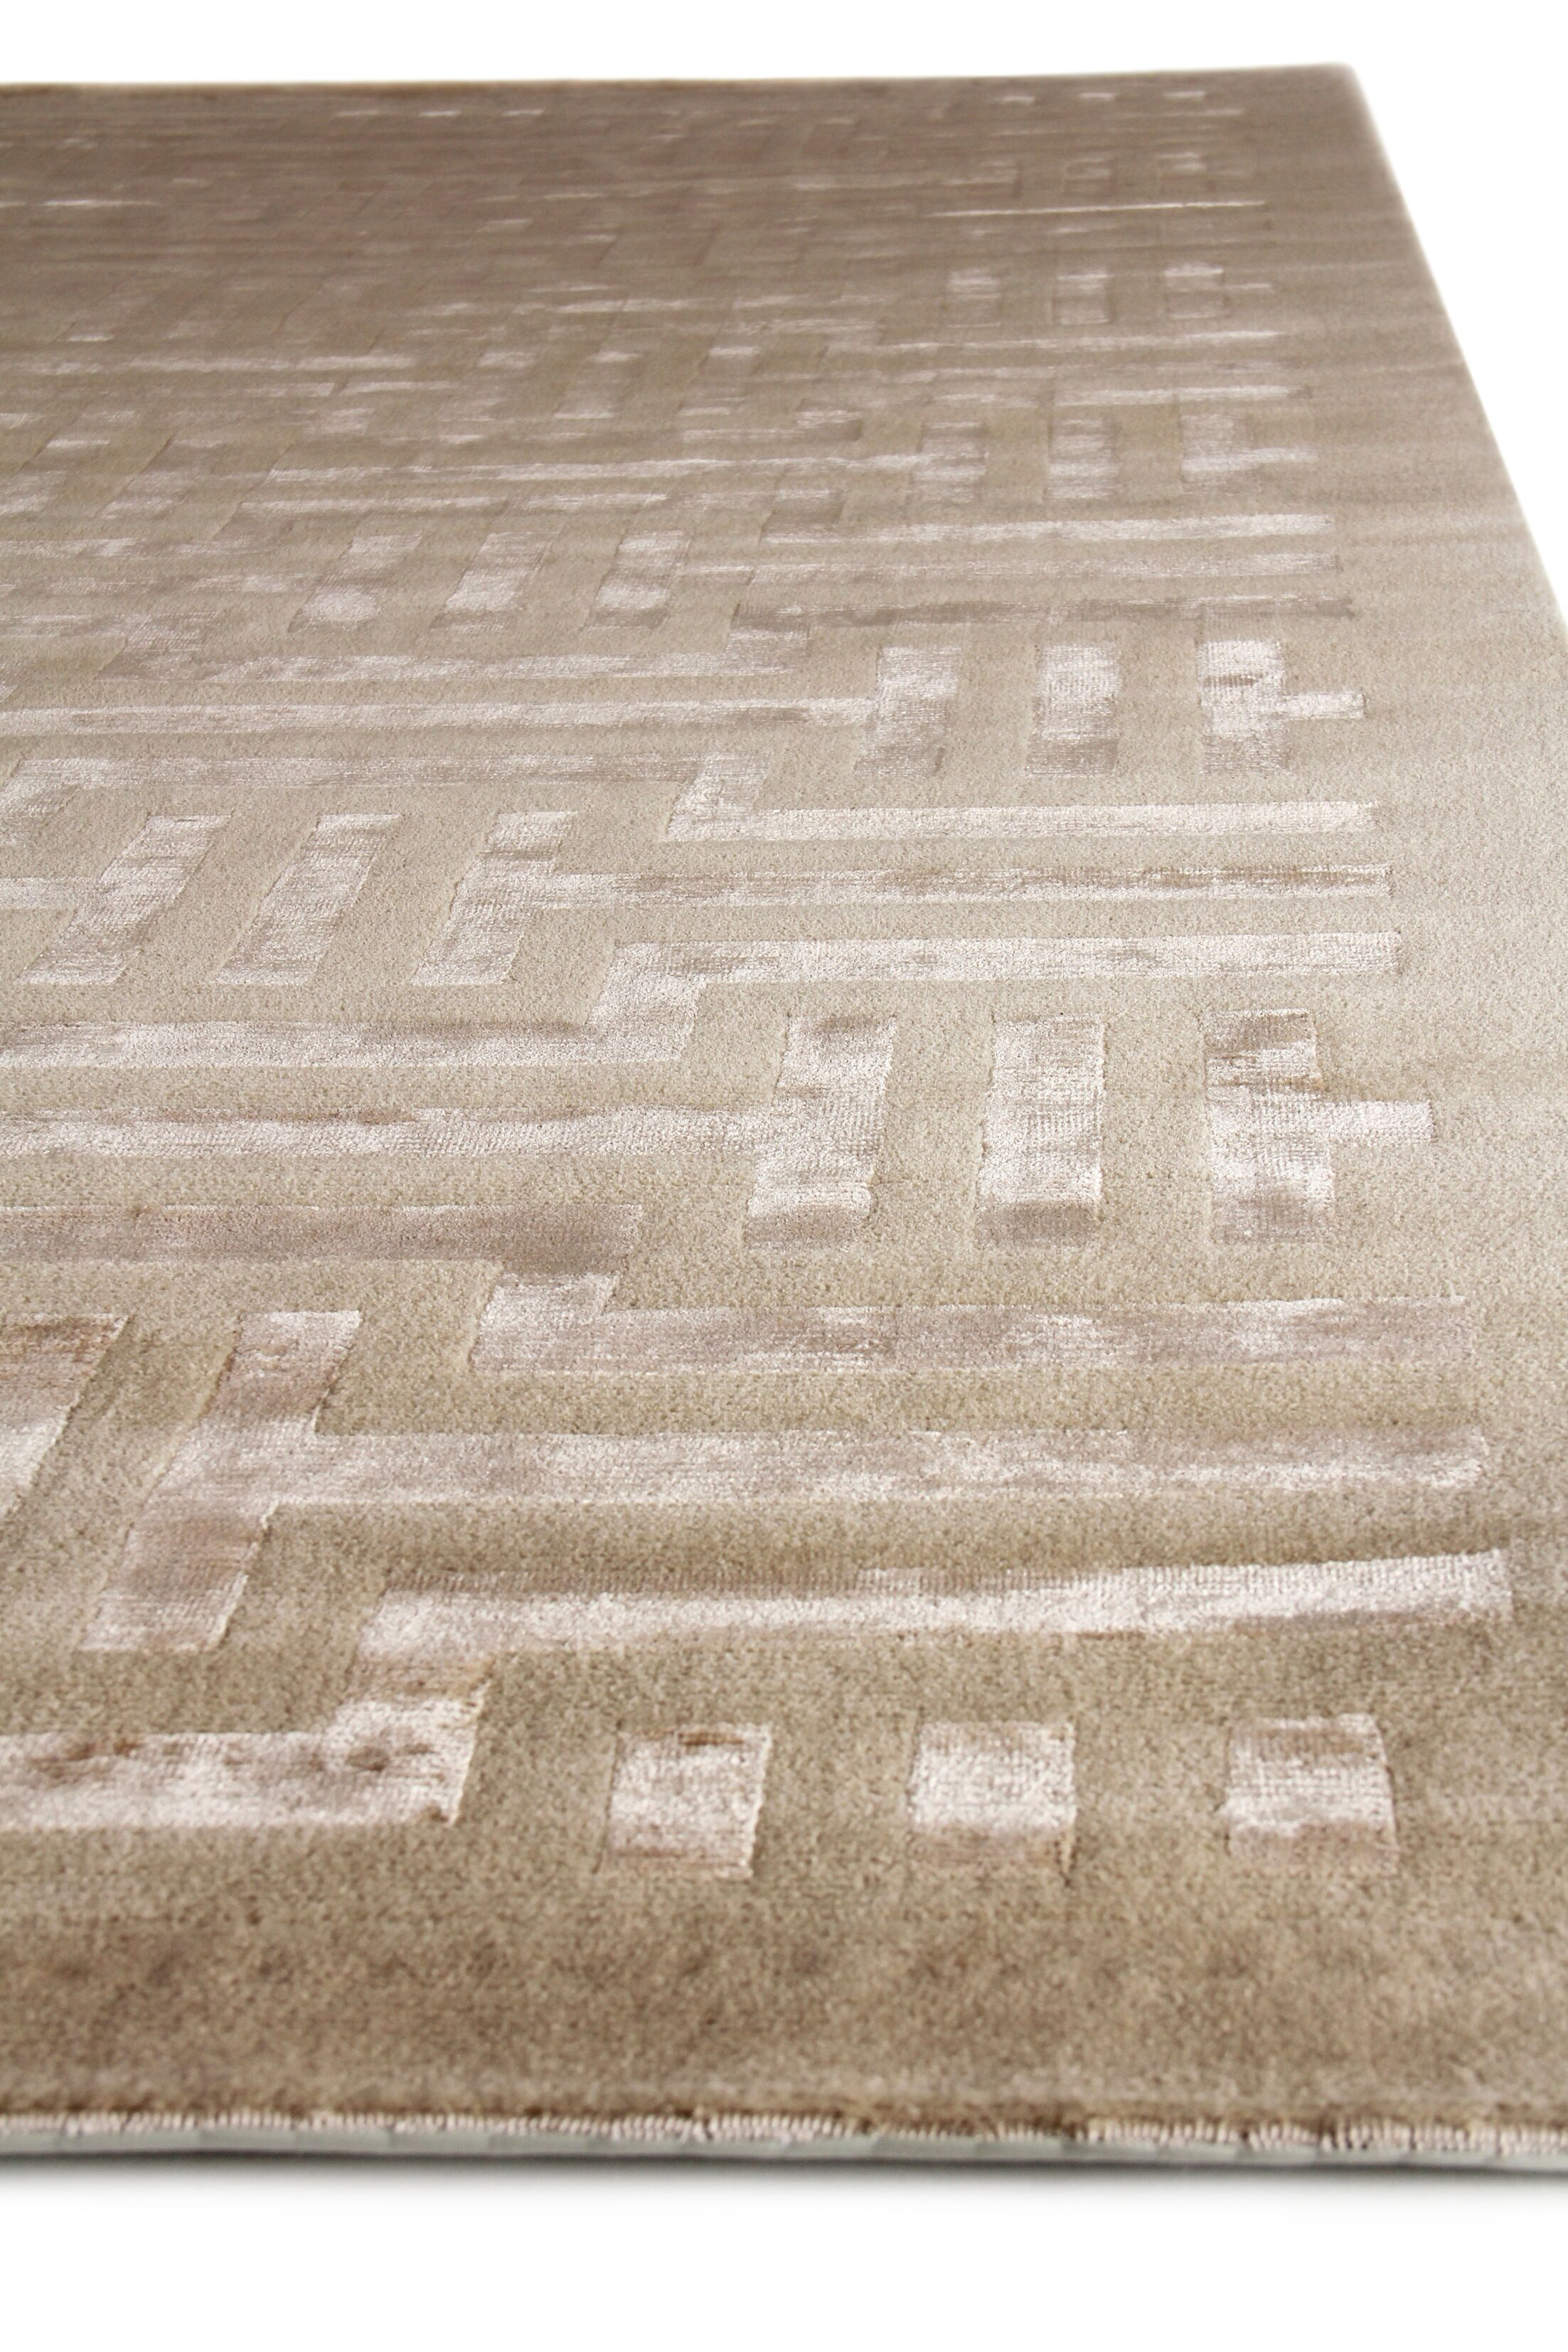 Super Tibetan Hand Knotted Wool/Silk Beige Area Rug Rug Size: Rectangle 8' x 10'